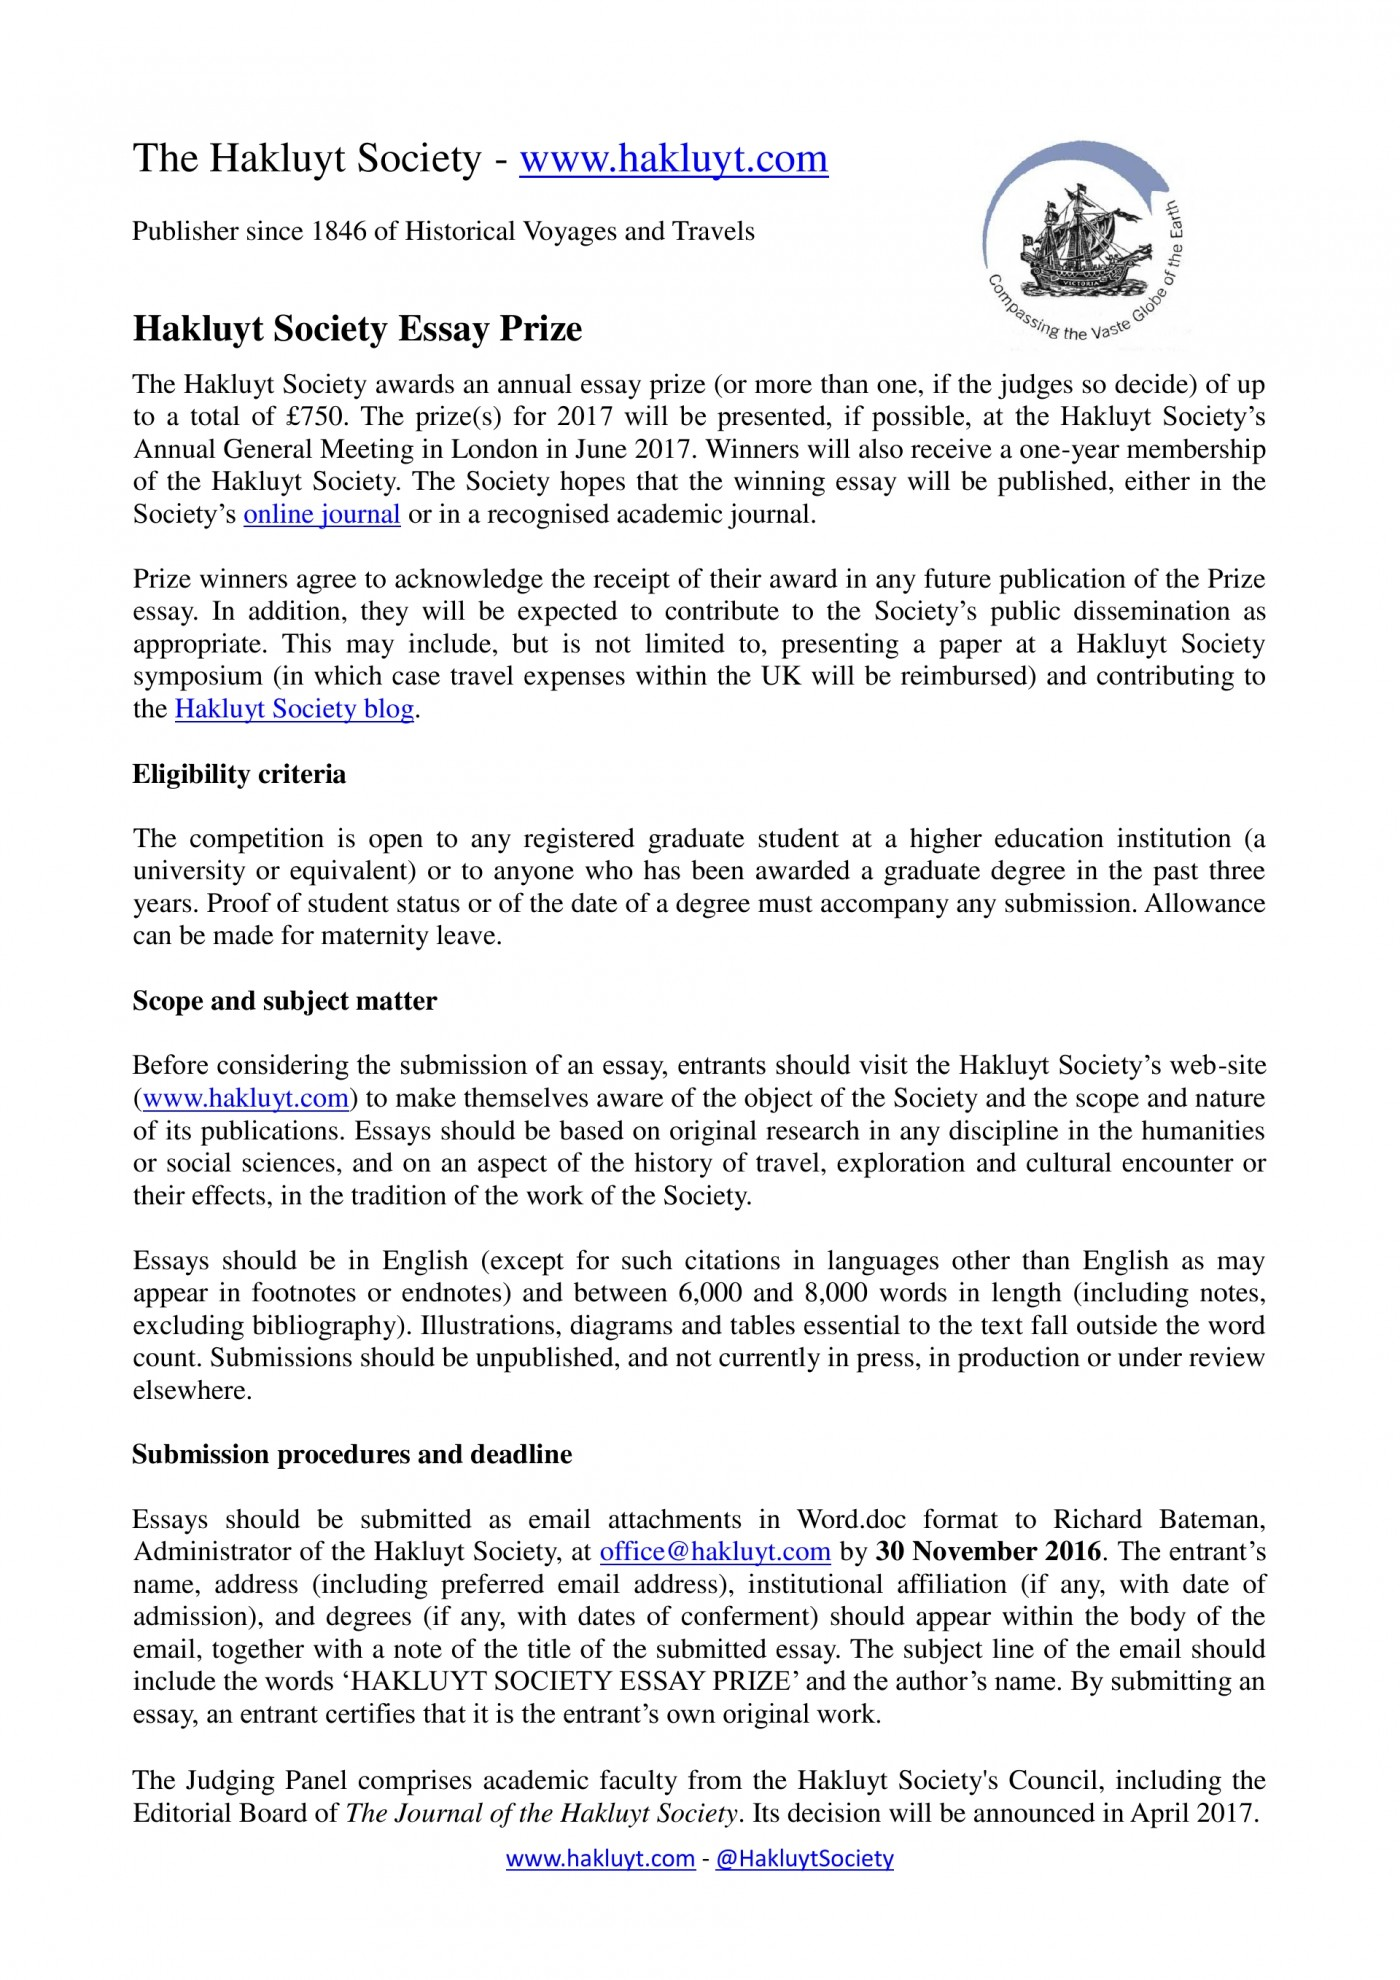 017 Travel Essay Hakluyt Society Prize The Example Text Journal Sample Tagalog Photo Examples Experience Pdf Writing Unique Definition Submissions 1400